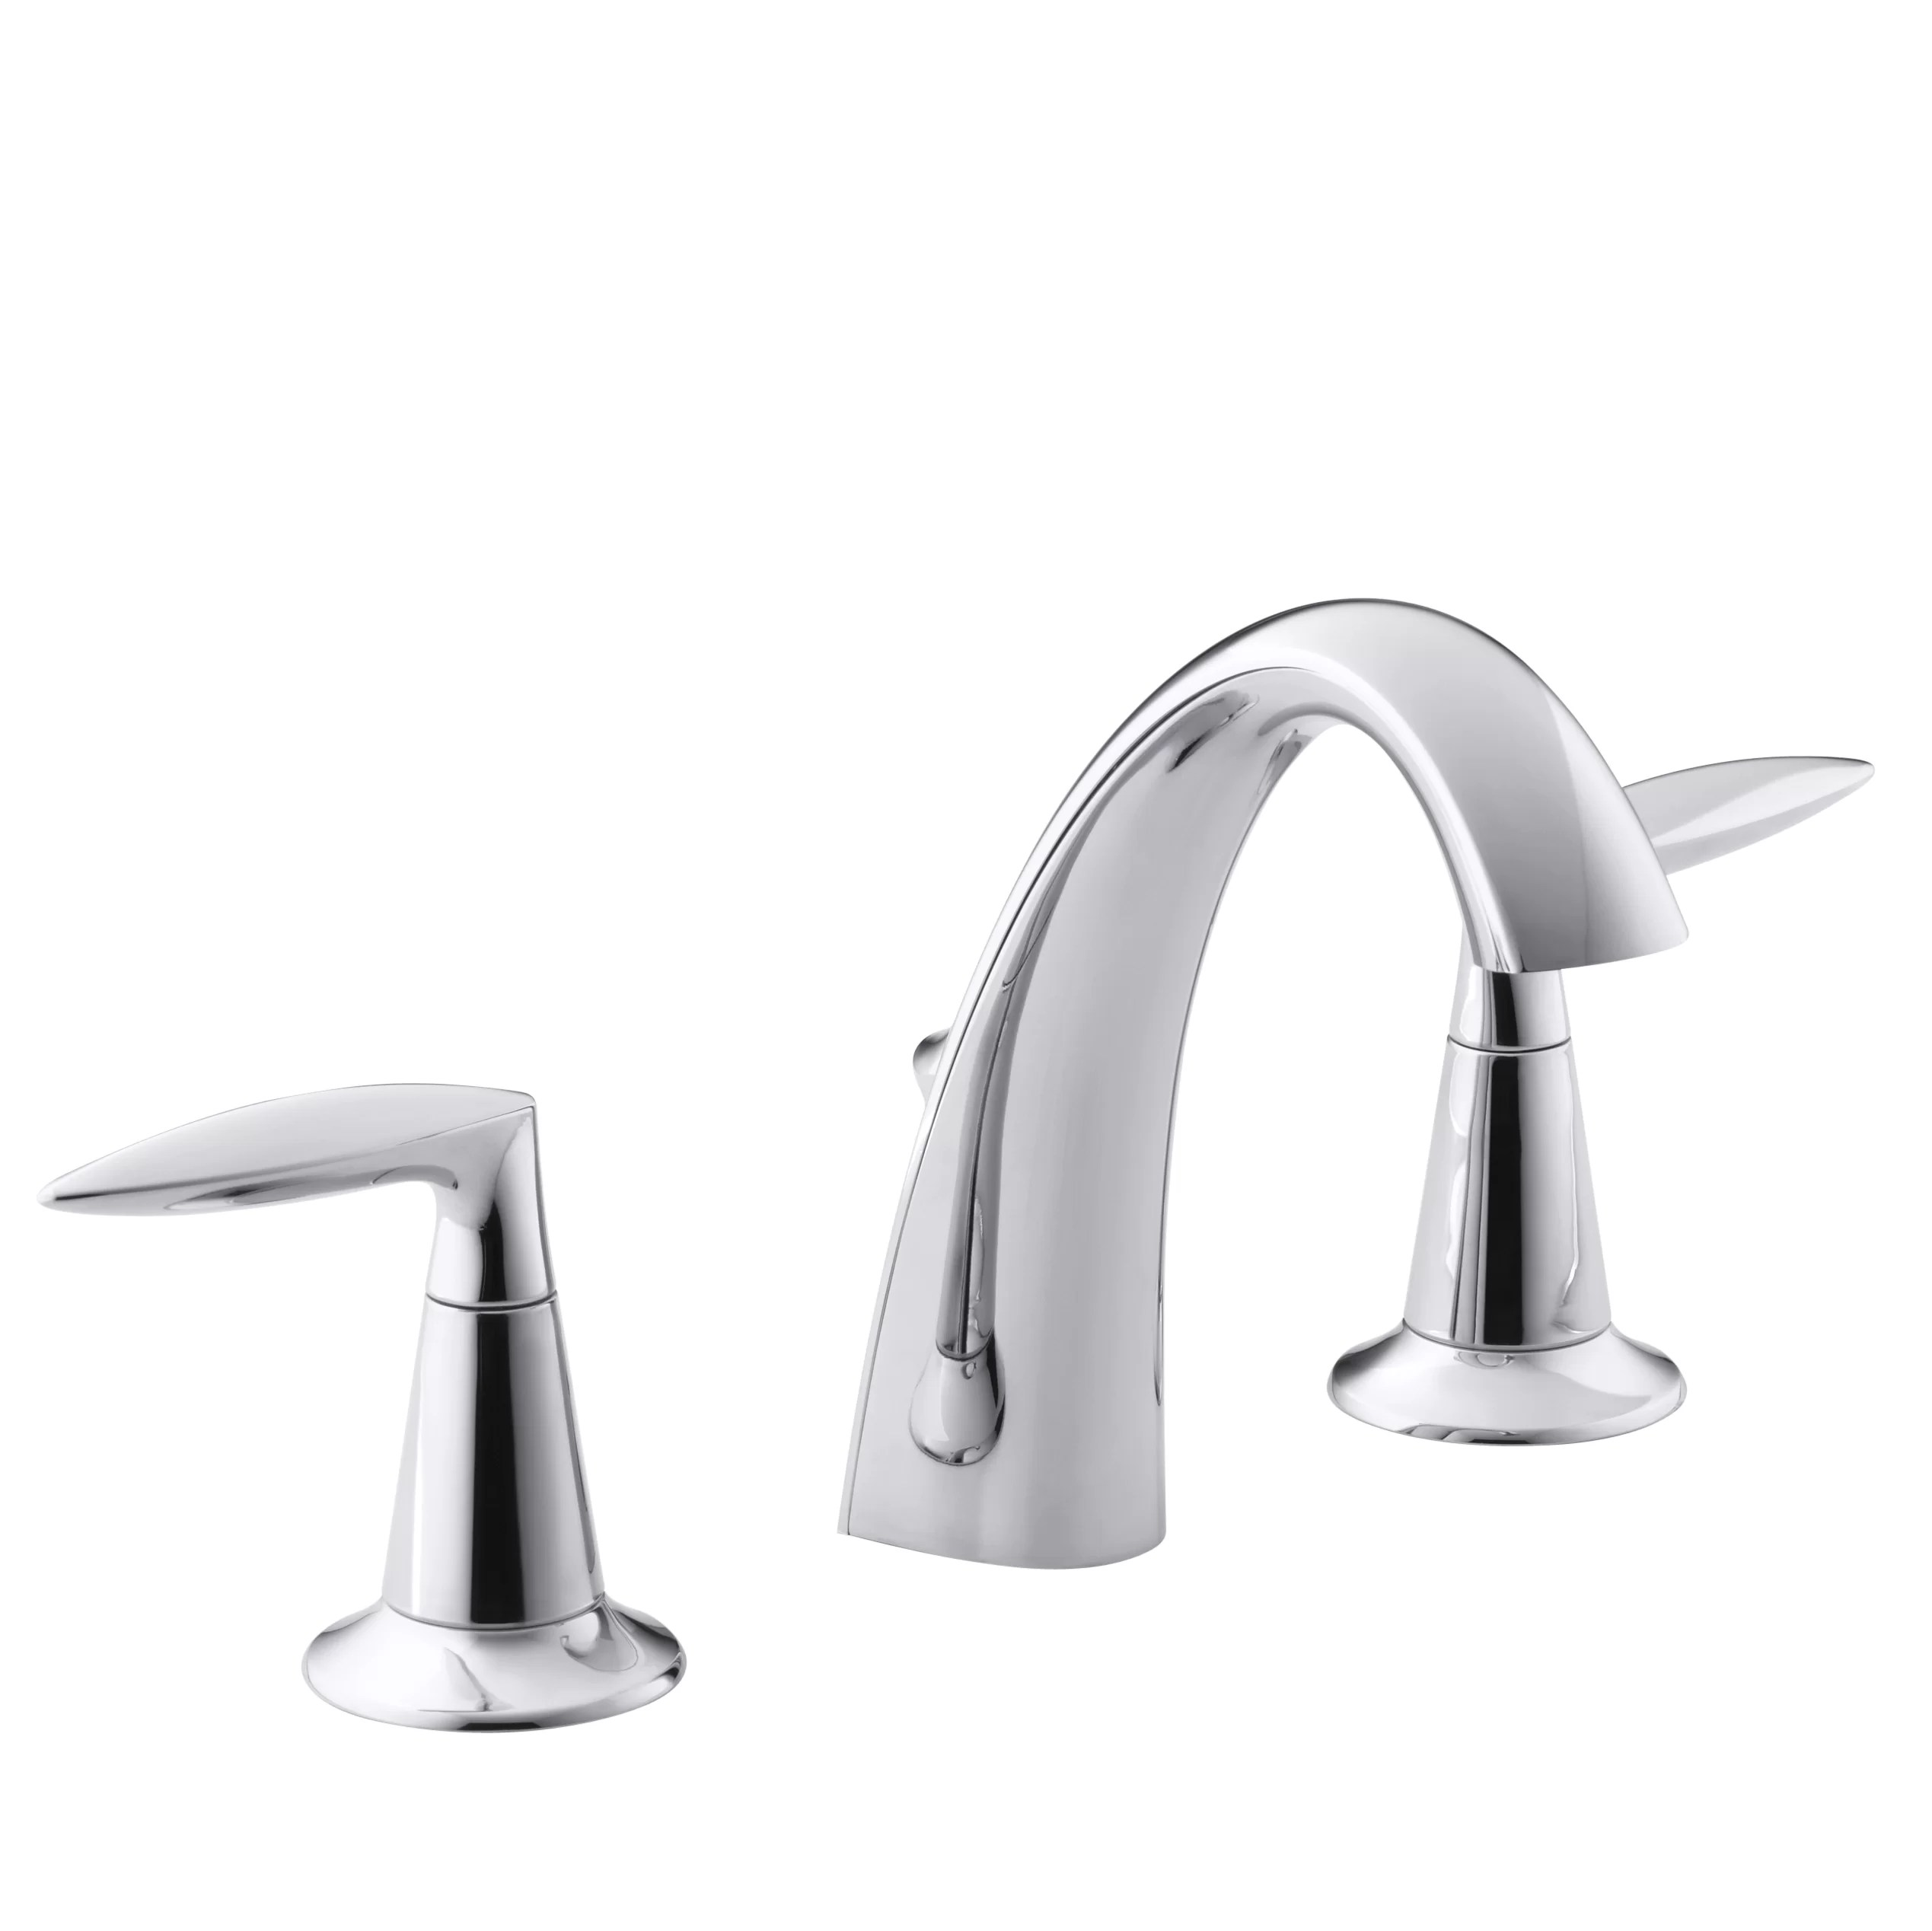 Bathroom Sink Faucets Alteo Widespread Bathroom Sink Faucet With Drain Assembly